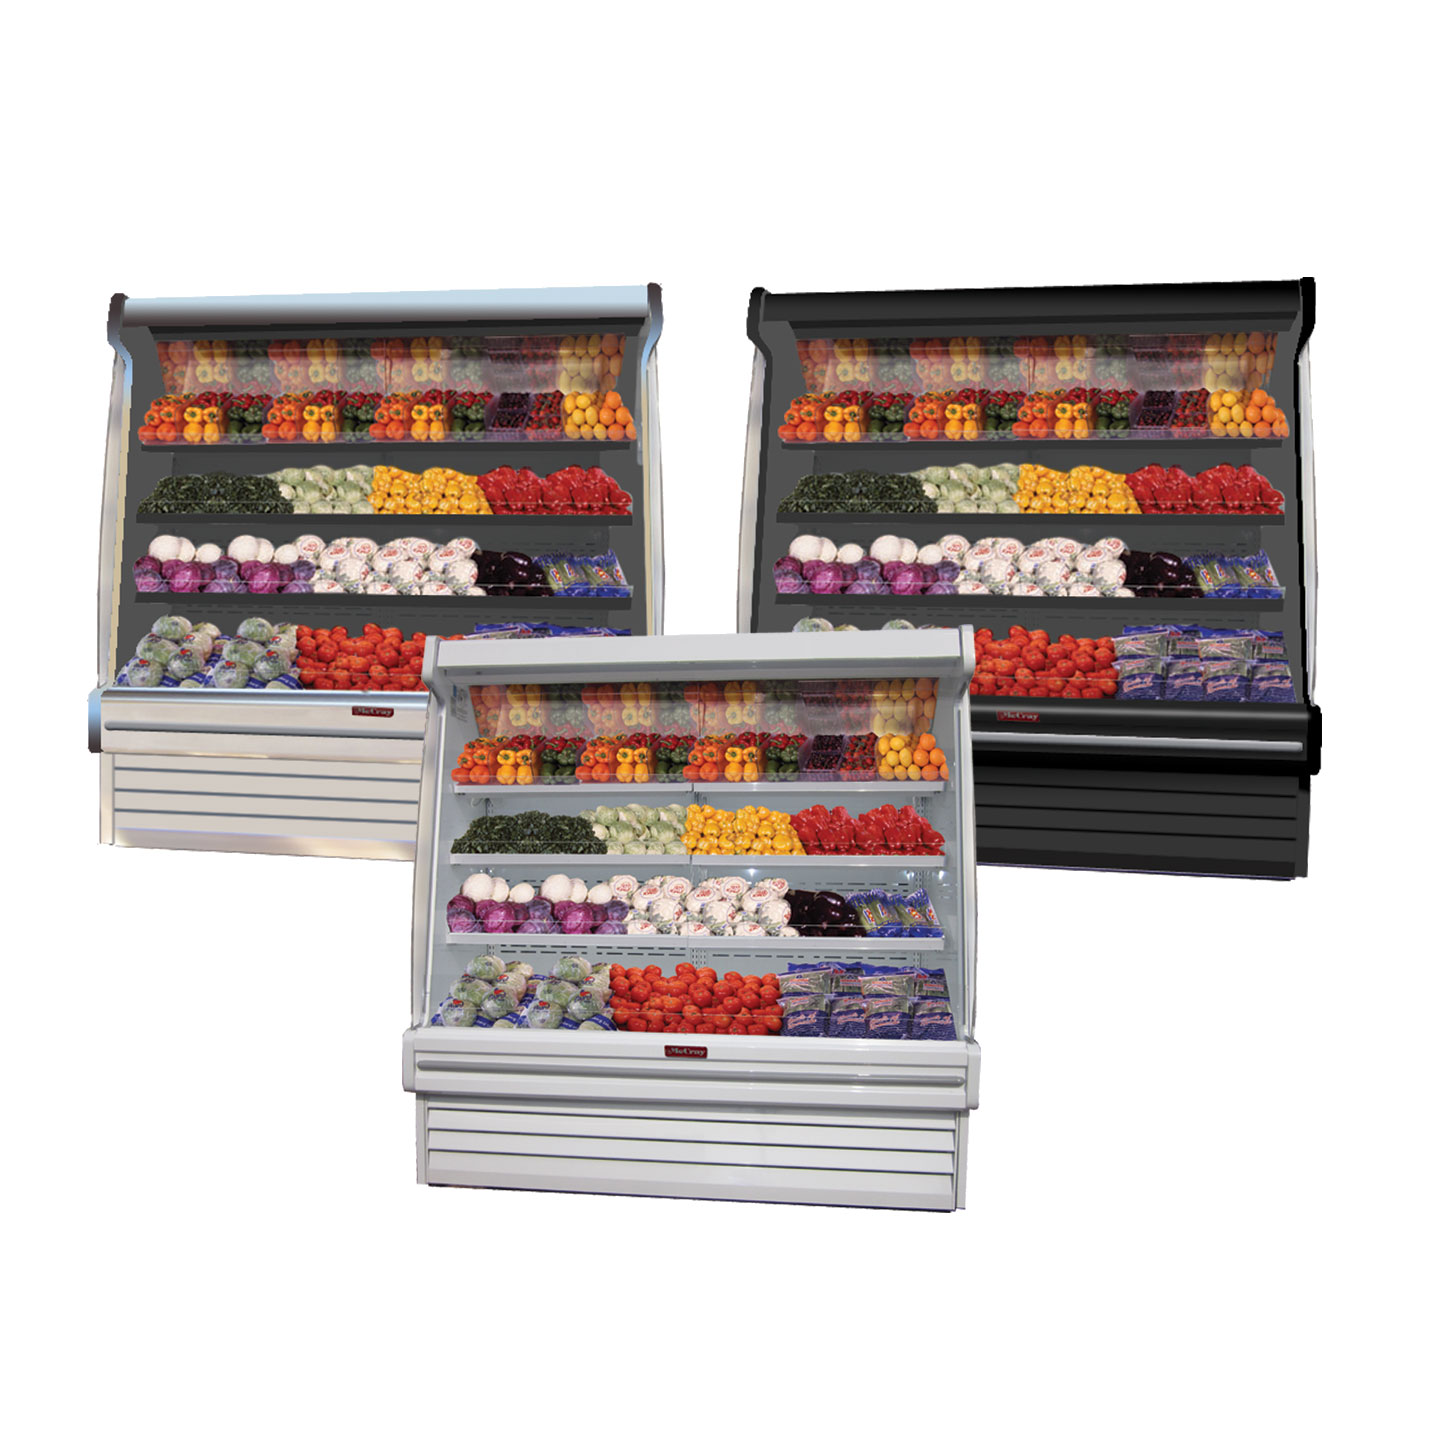 Howard-McCray R-OP35E-8S-B-LED display case, produce